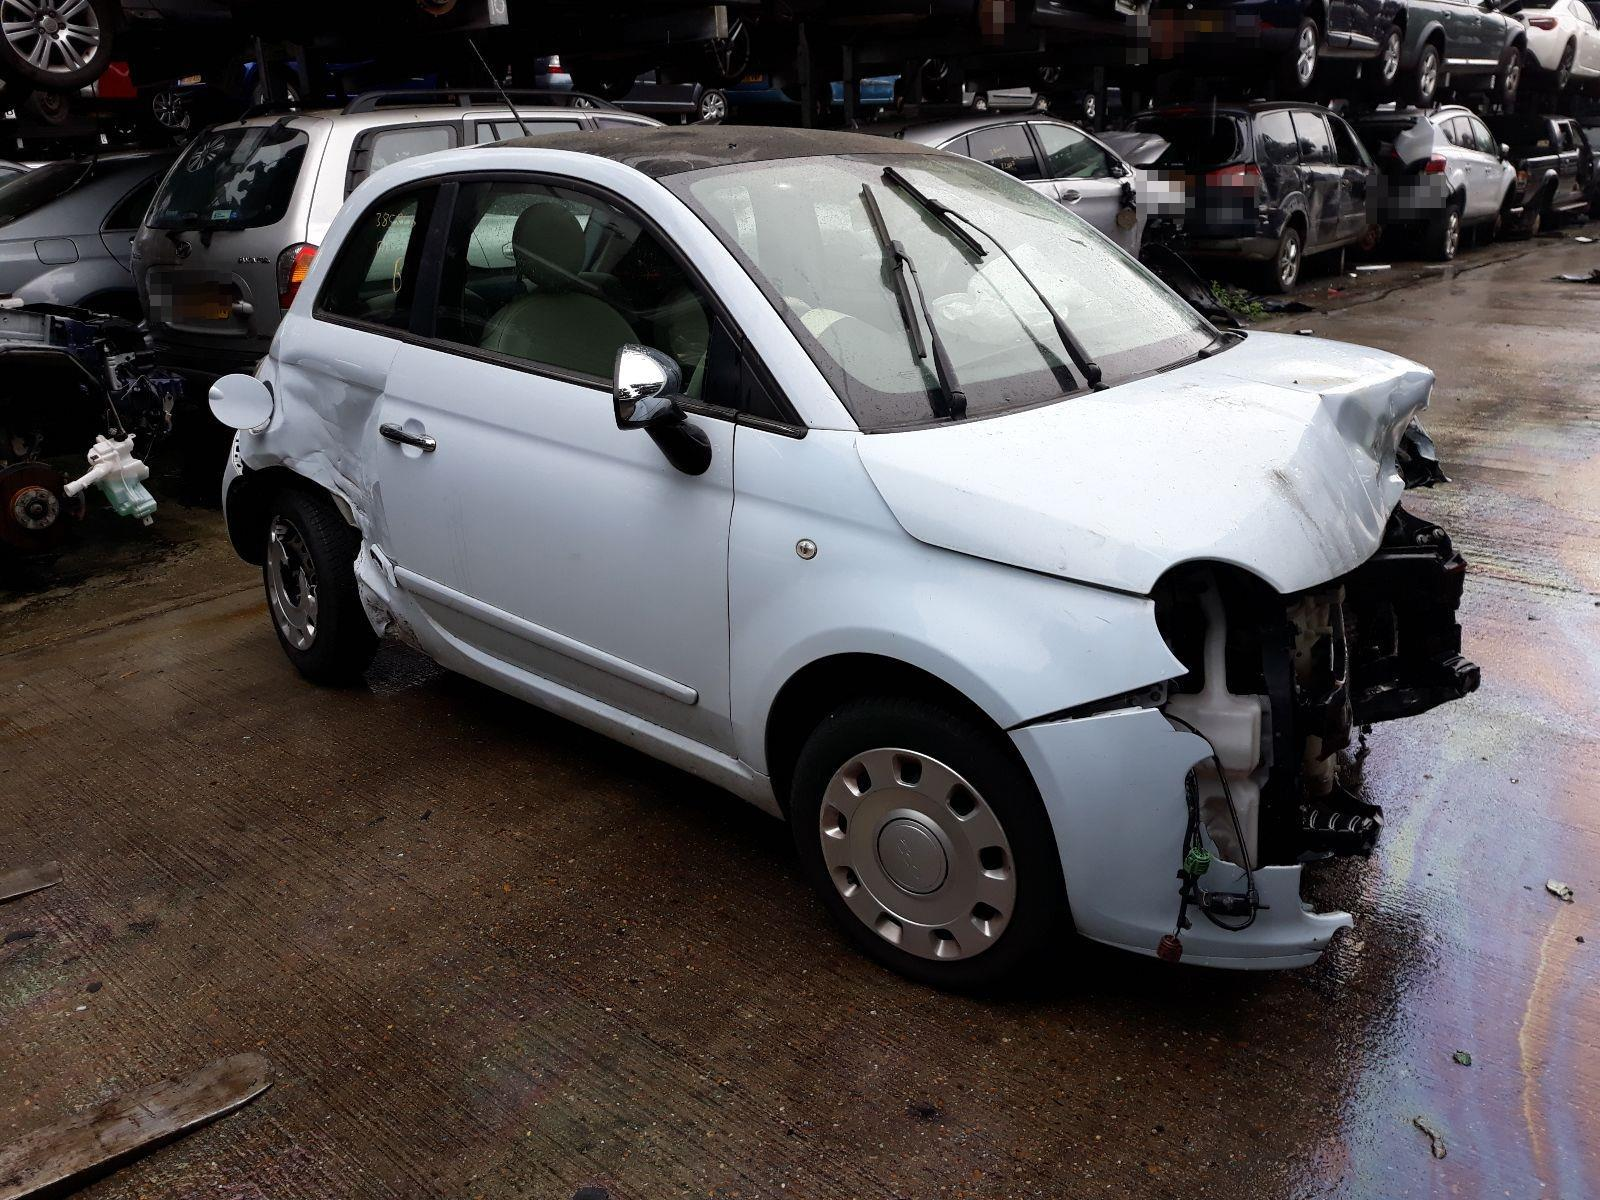 Fiat 500 2008 To 2015 Pop 3 Door Hatchback Scrap Salvage Car For Grande Punto Fuse Box Glove Compartment Sale Auction Silverlake Autoparts